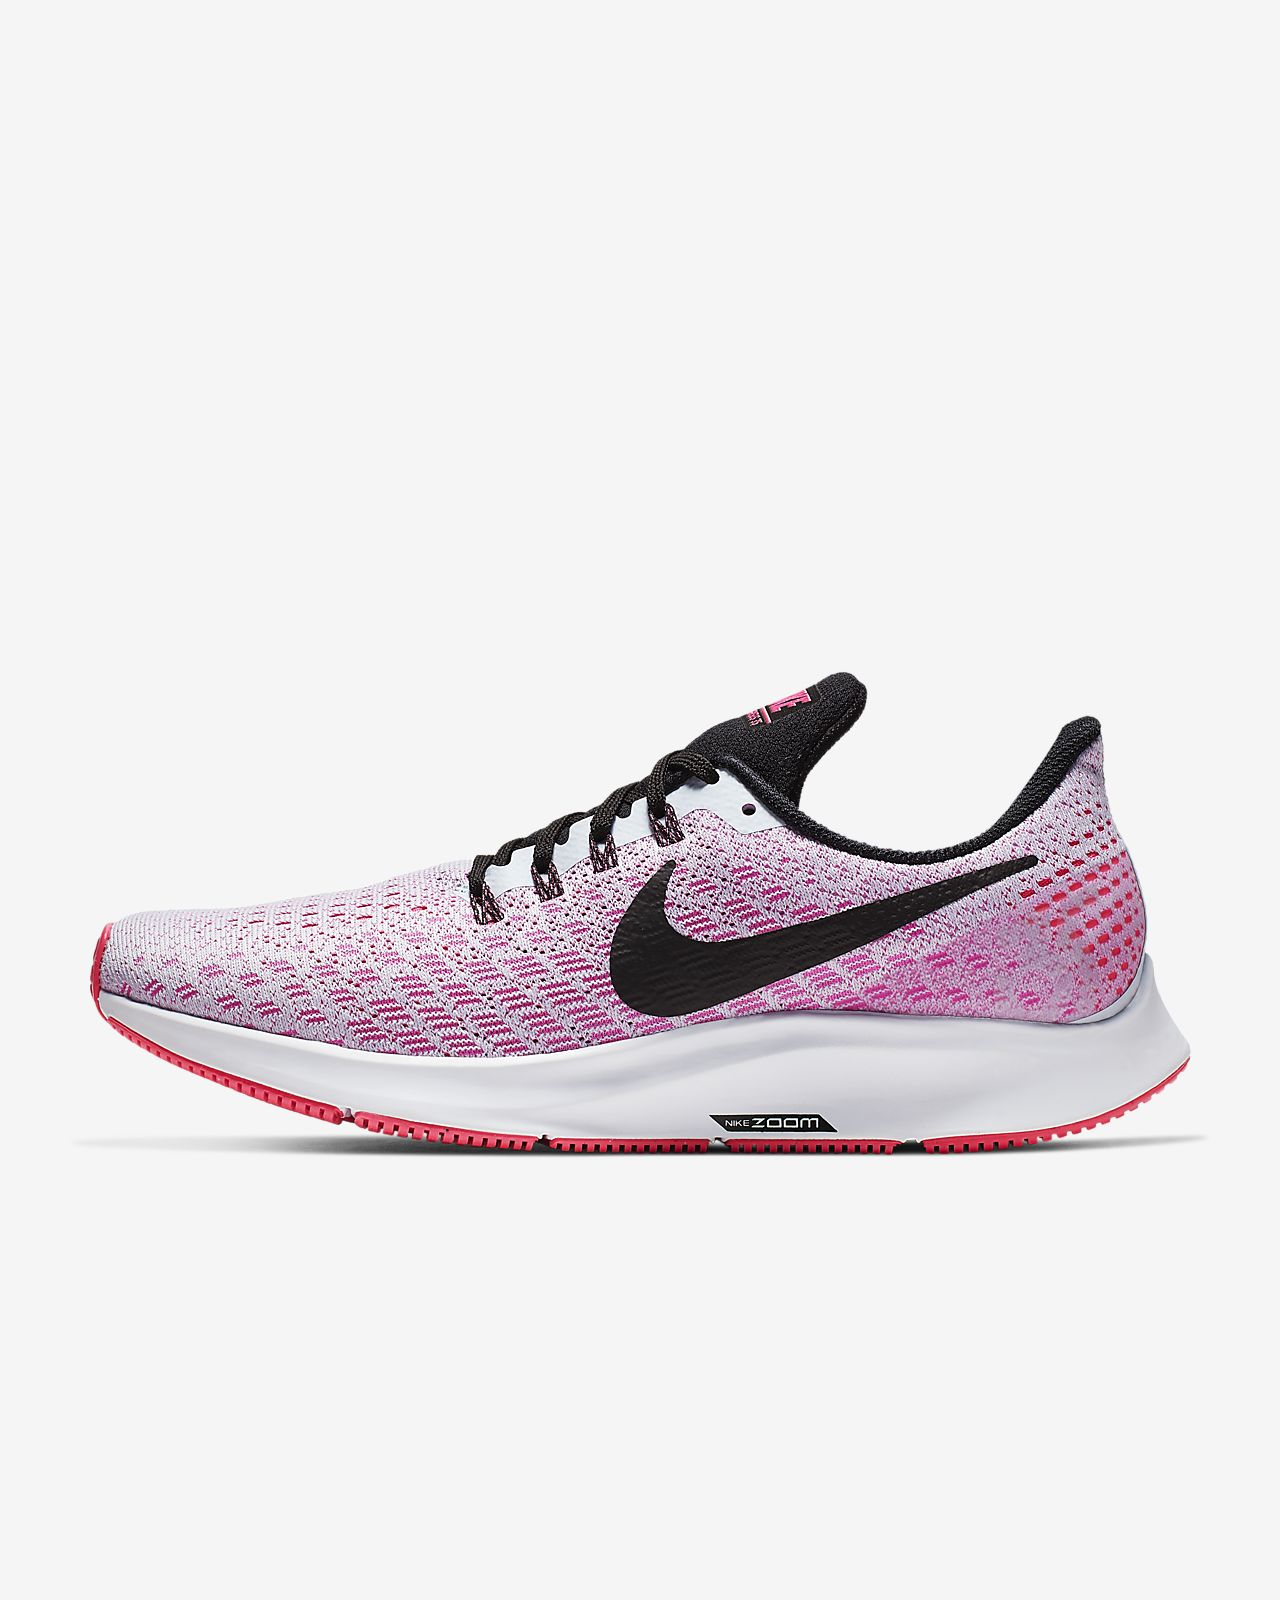 07139f33dda2d Nike Air Zoom Pegasus 35 Women s Running Shoe. Nike.com